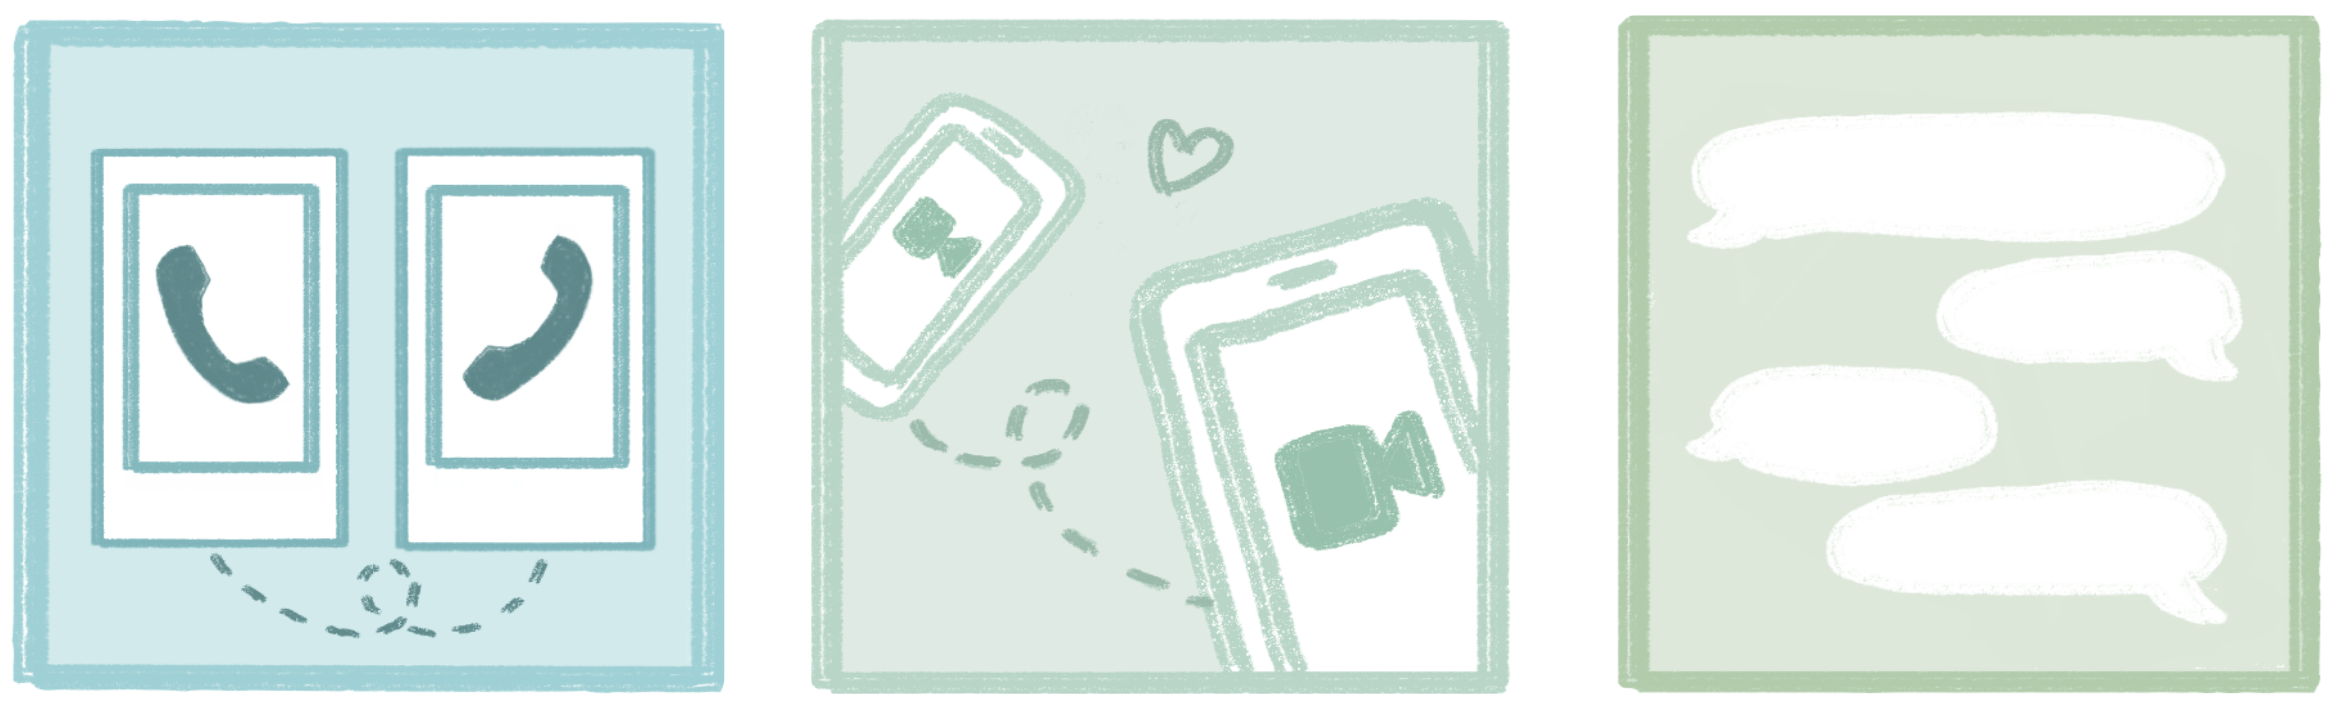 three squares featuring designs of smartphones with phone and video icons, as well as speech bubbles